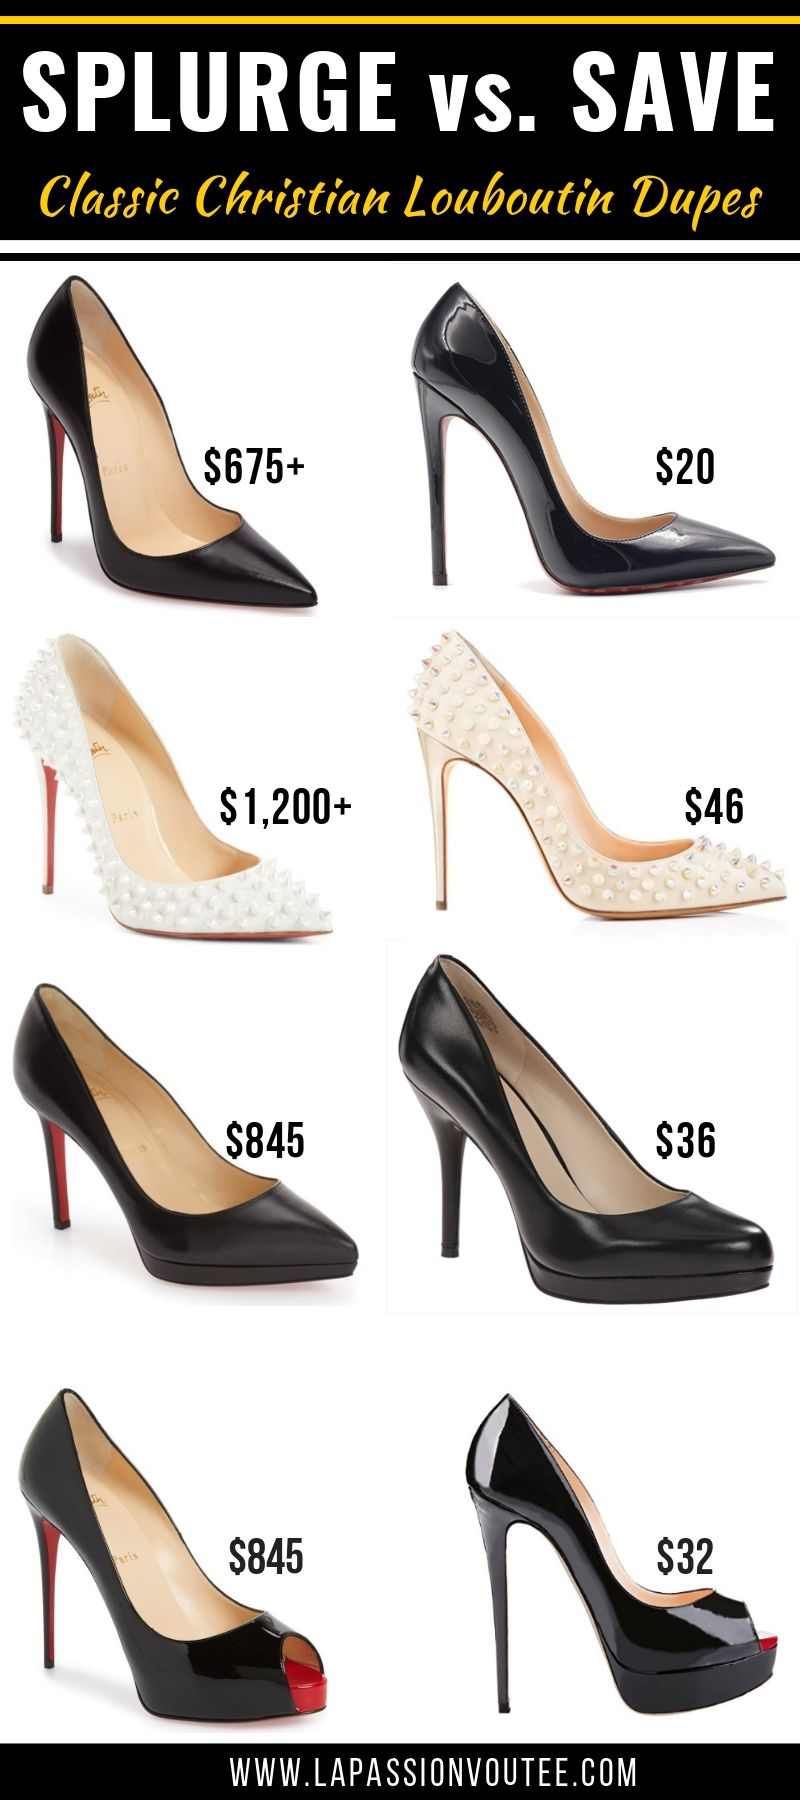 3c2bd2a647c 15+ Cheap Christian Louboutin Dupes